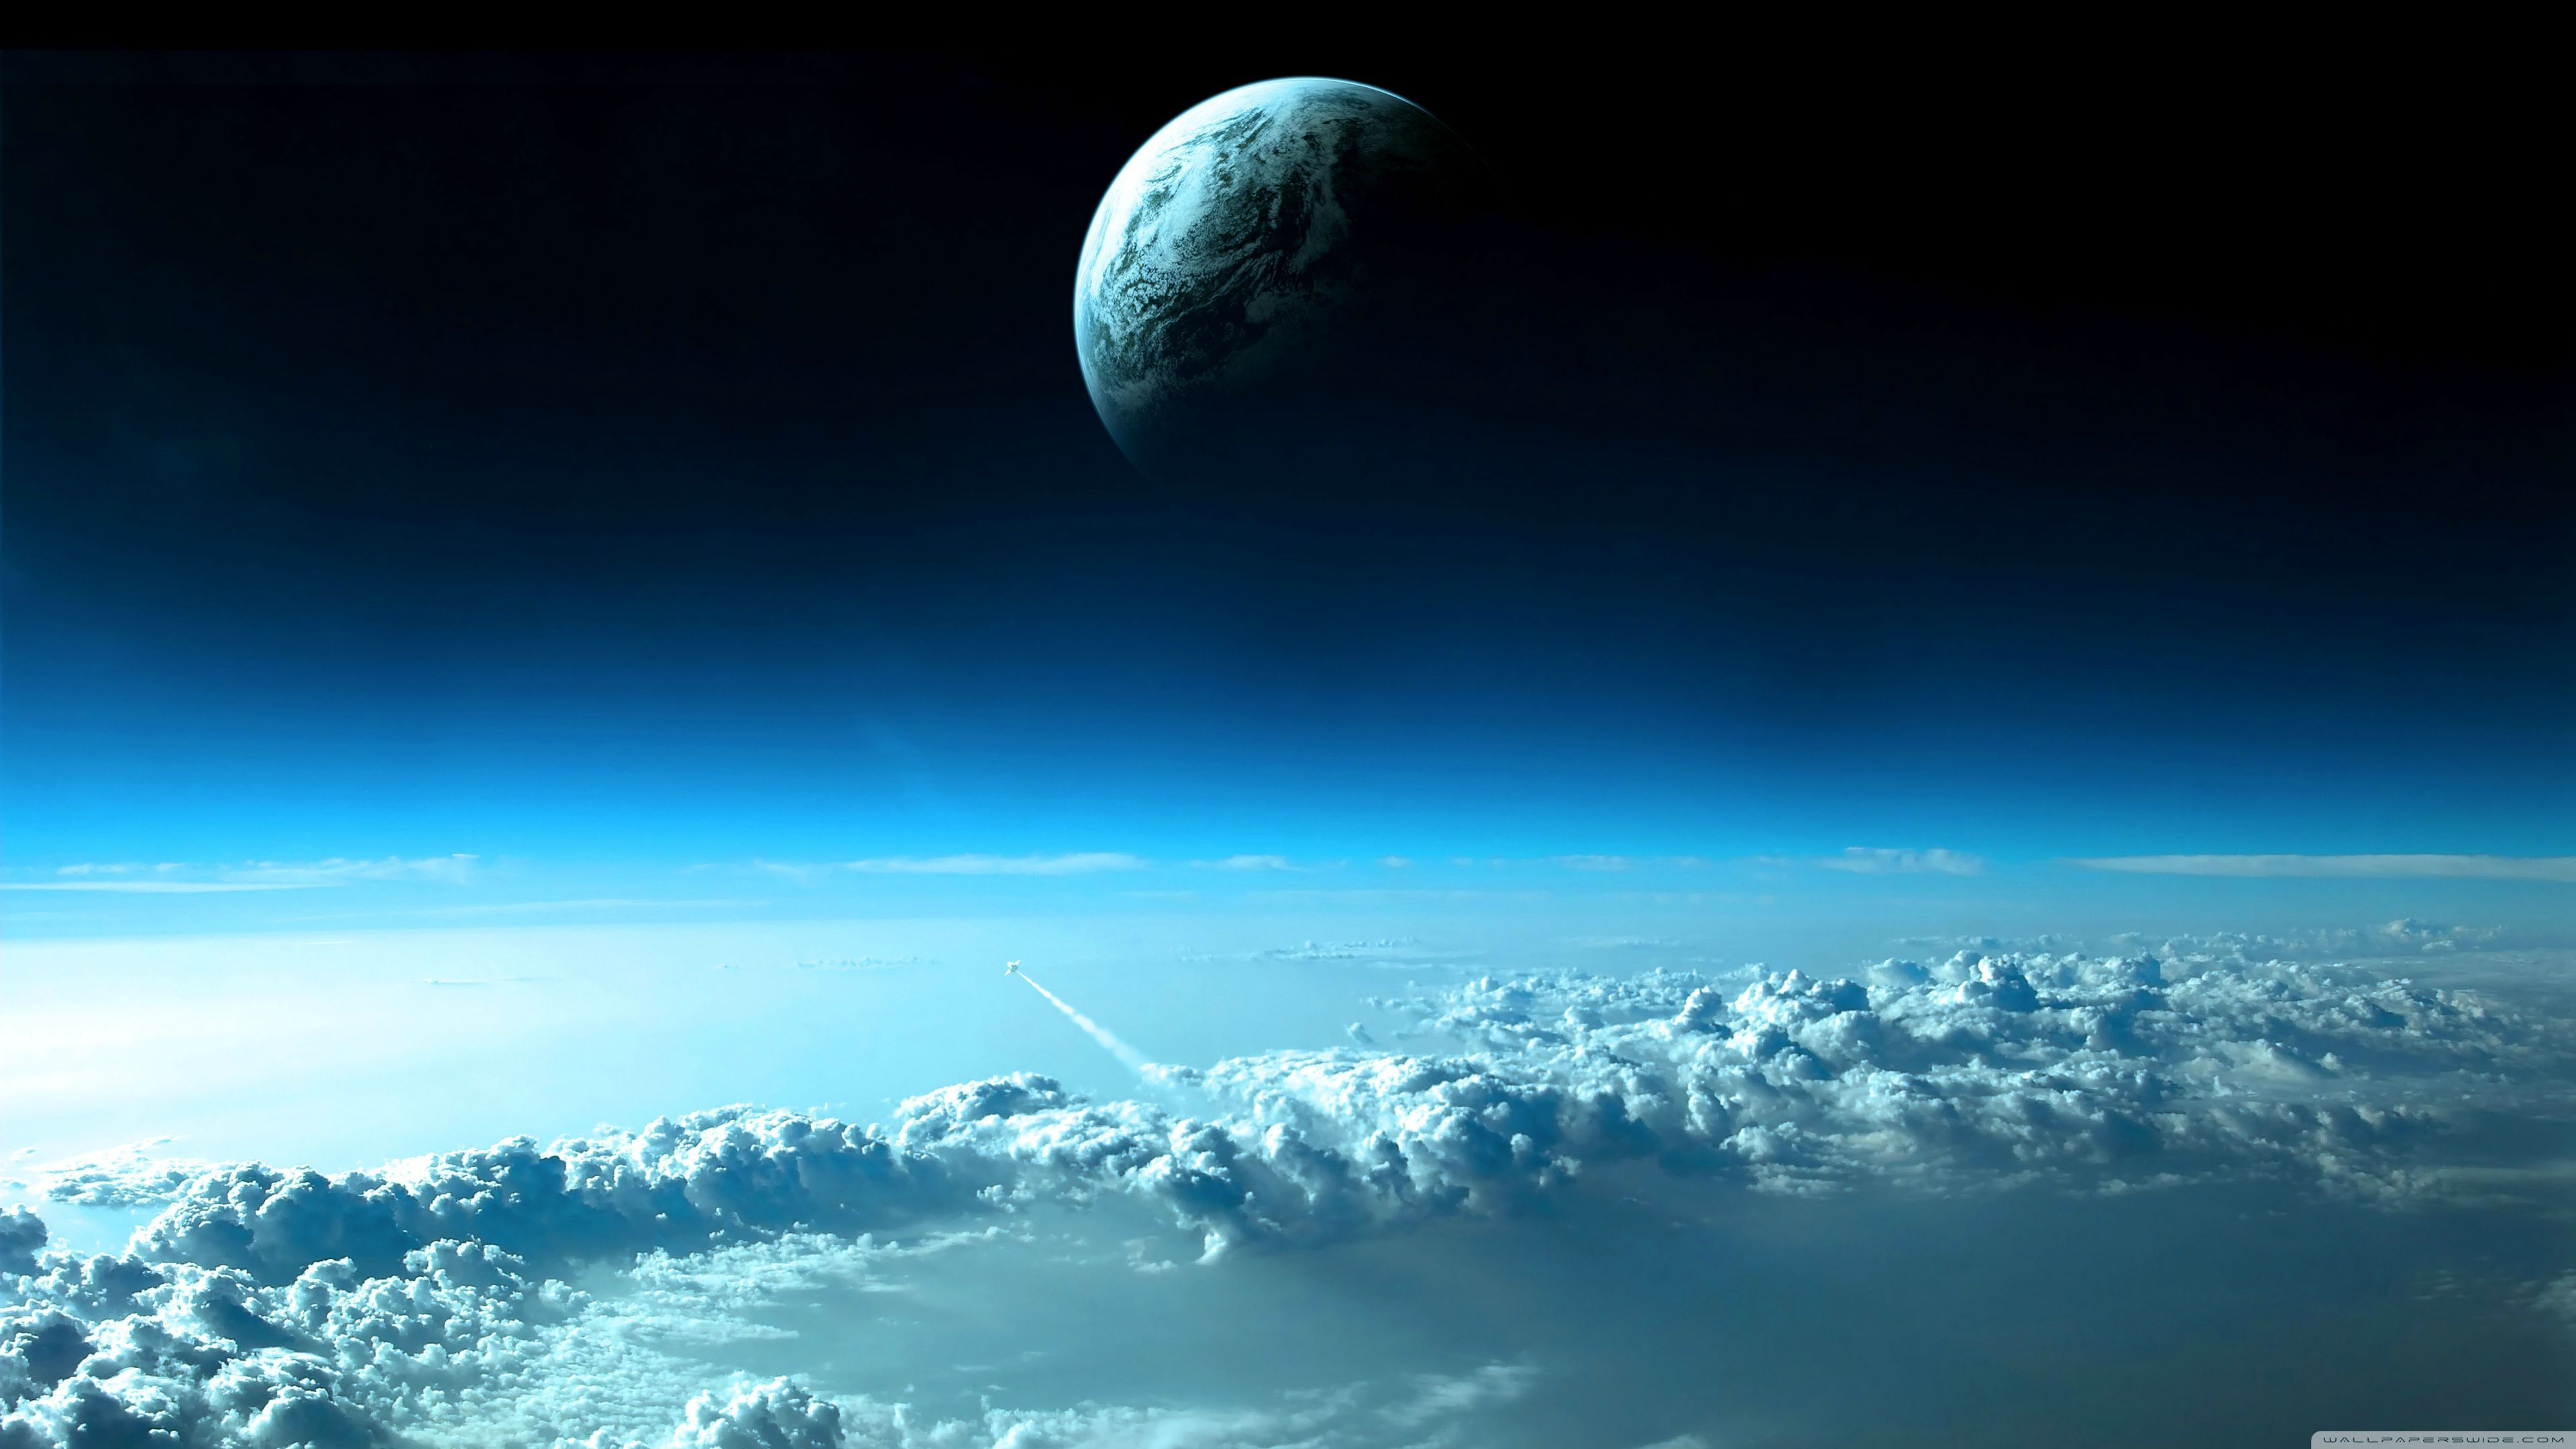 4k Space Wallpapers Collection Space Pictures Earth From Space Wallpaper Space